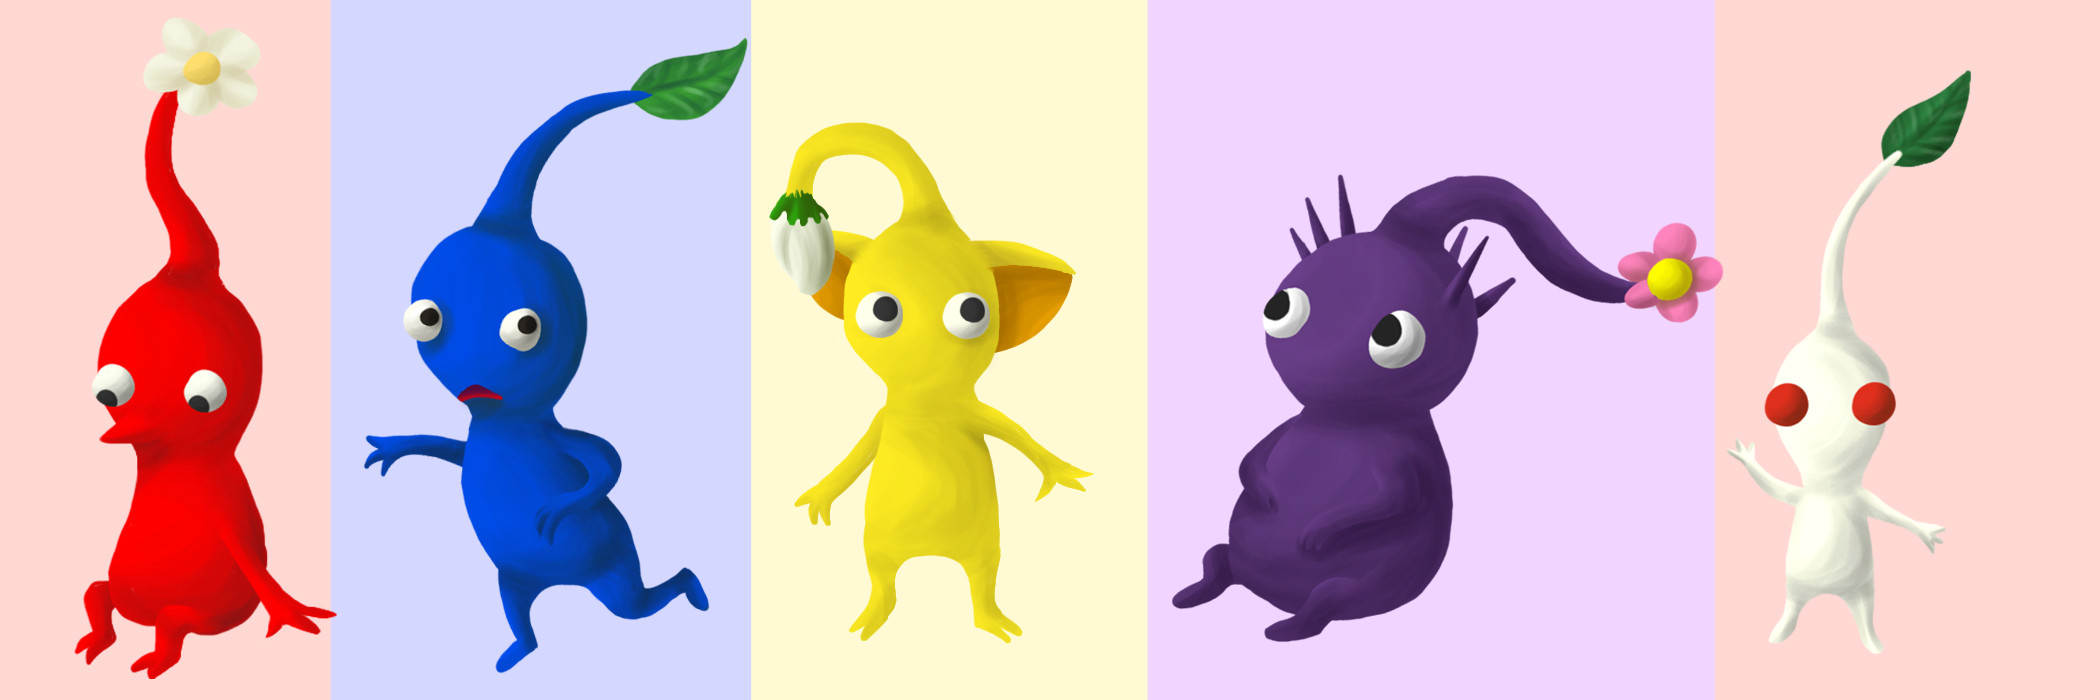 PIKMIN by Wuhzzles